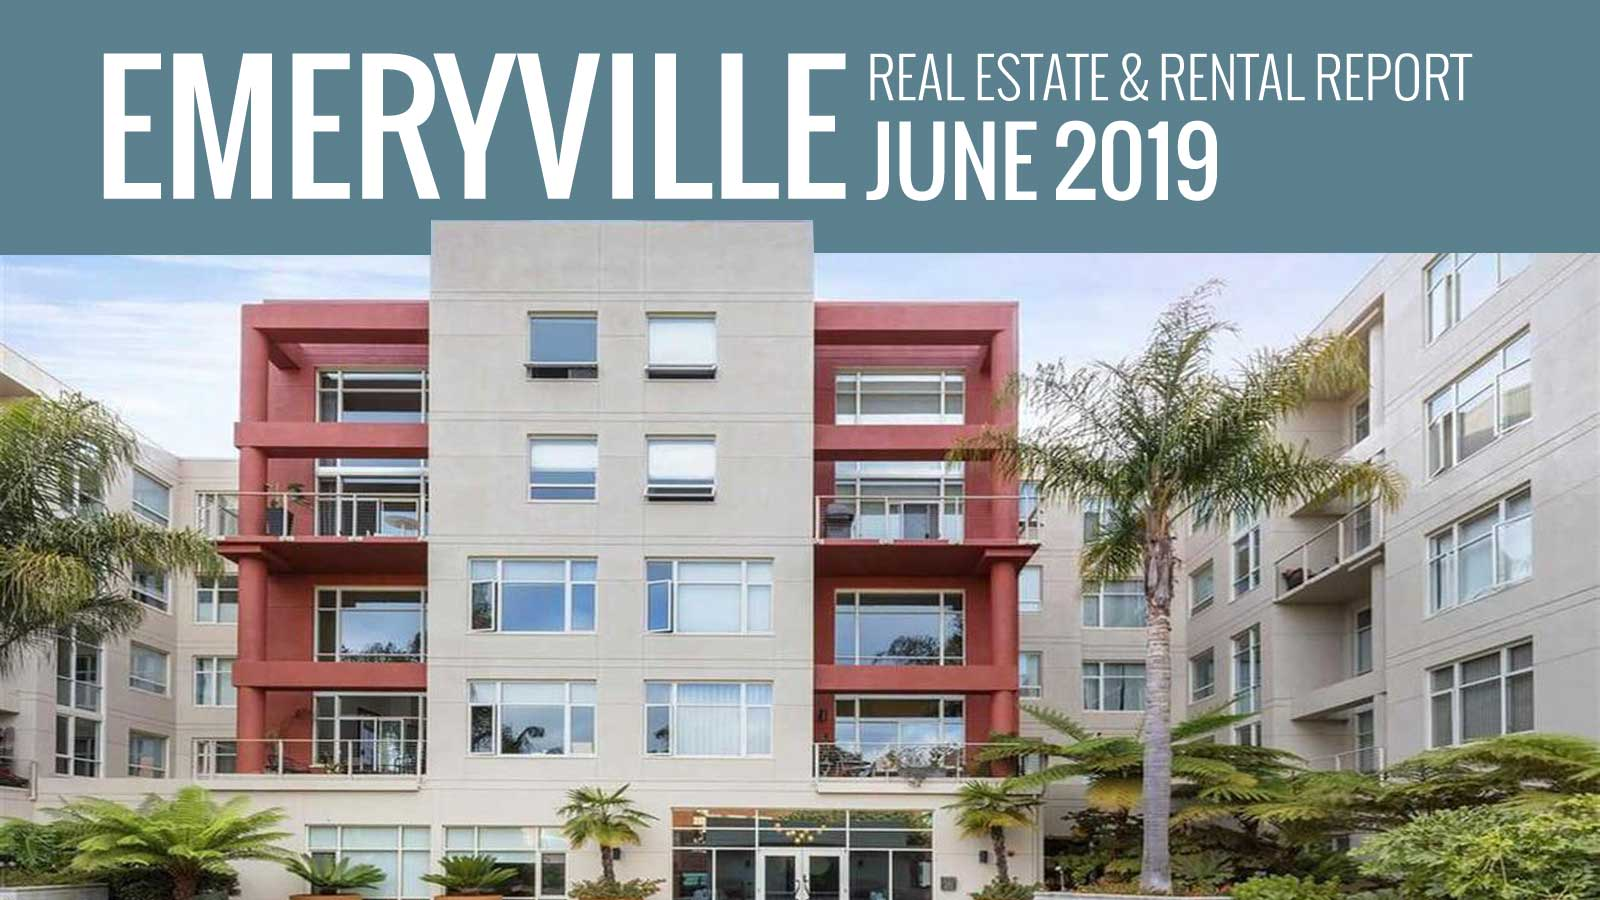 June 2019 Emeryville Real Estate Report: Bay Area Home Sales